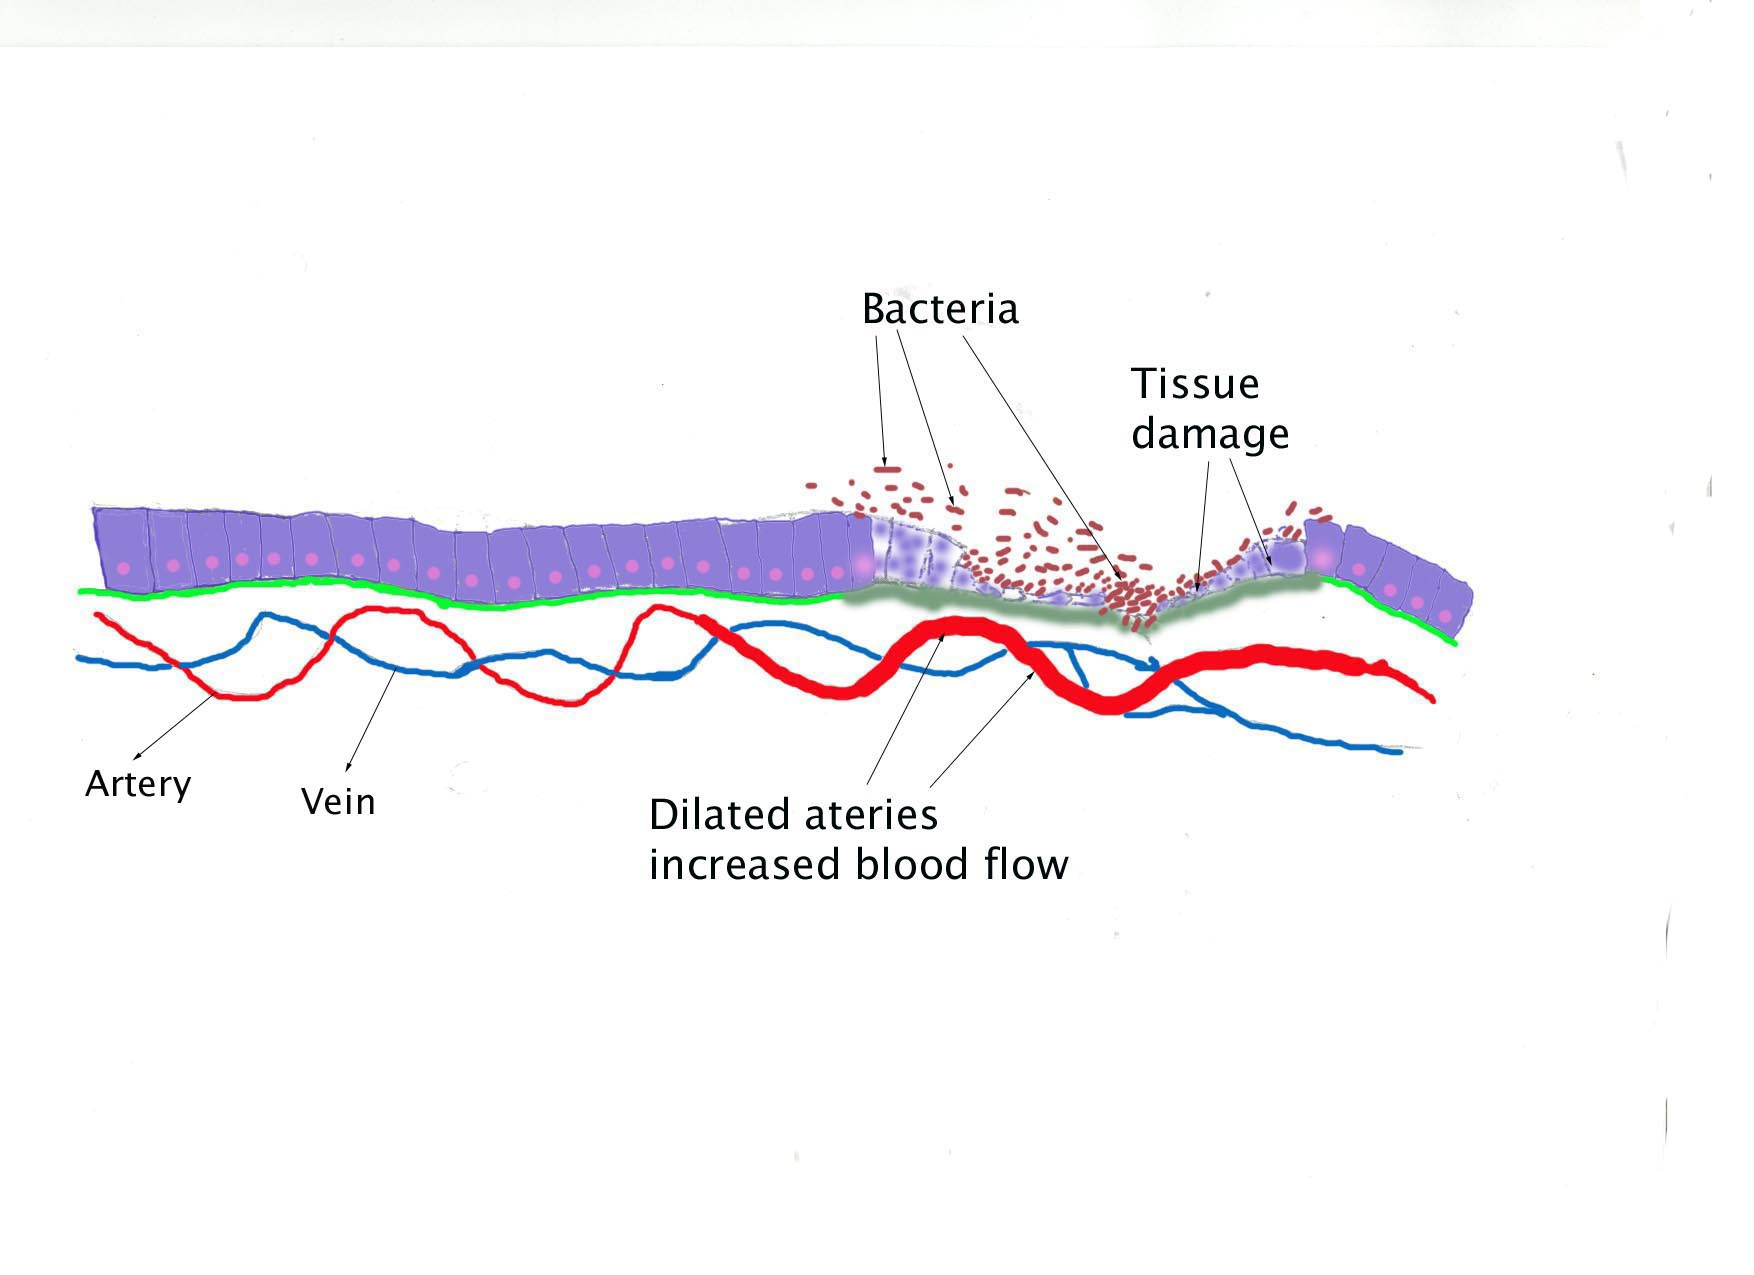 Bacteria causes tissue detruction